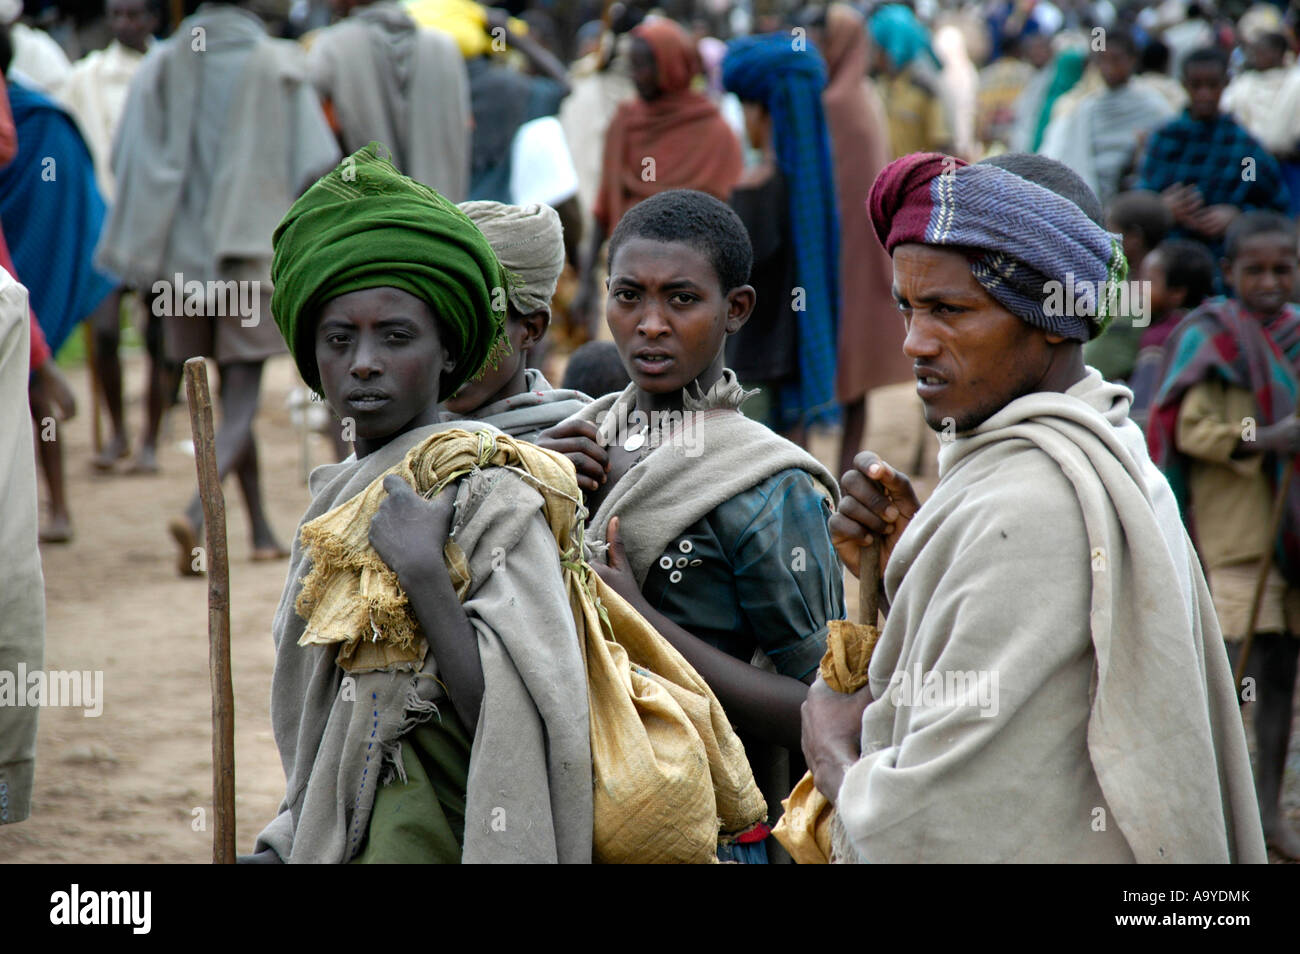 Three people in traditional dress on the market Bahir Dar Ethiopia Stock Photo